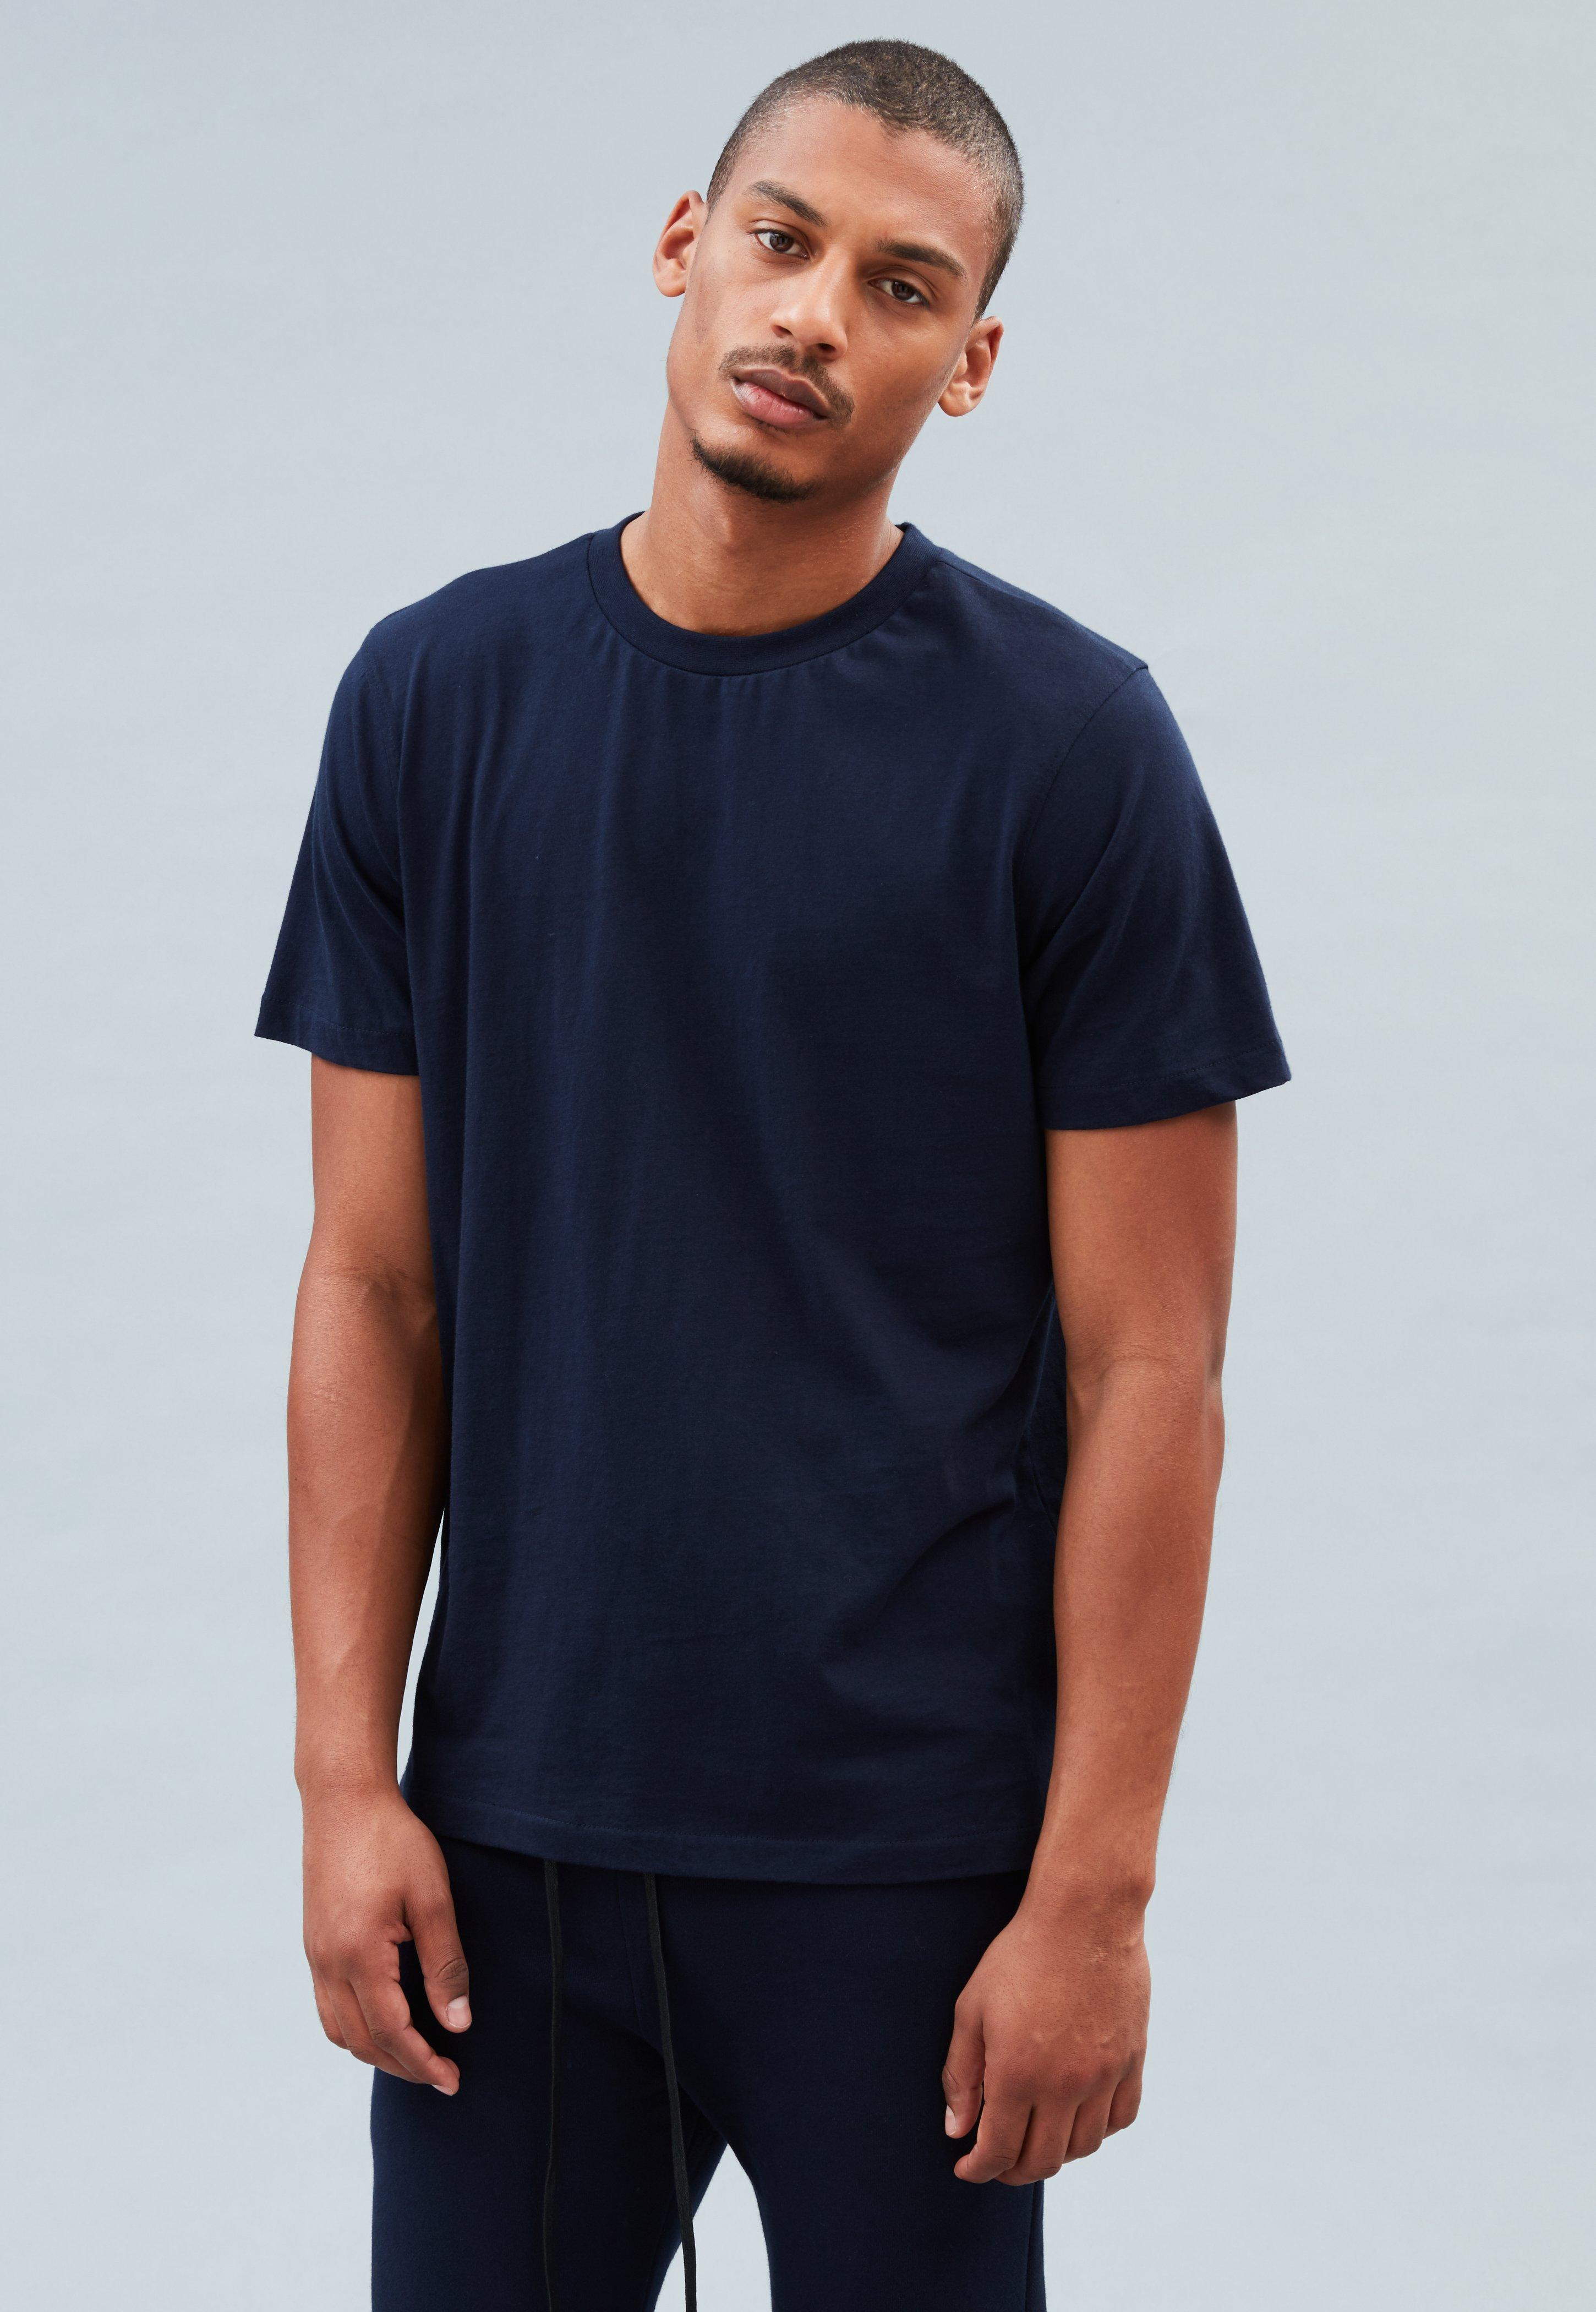 bbe2ca62de1c2 Super Longline T Shirt With Oversized Fit And Stepped Hem ...